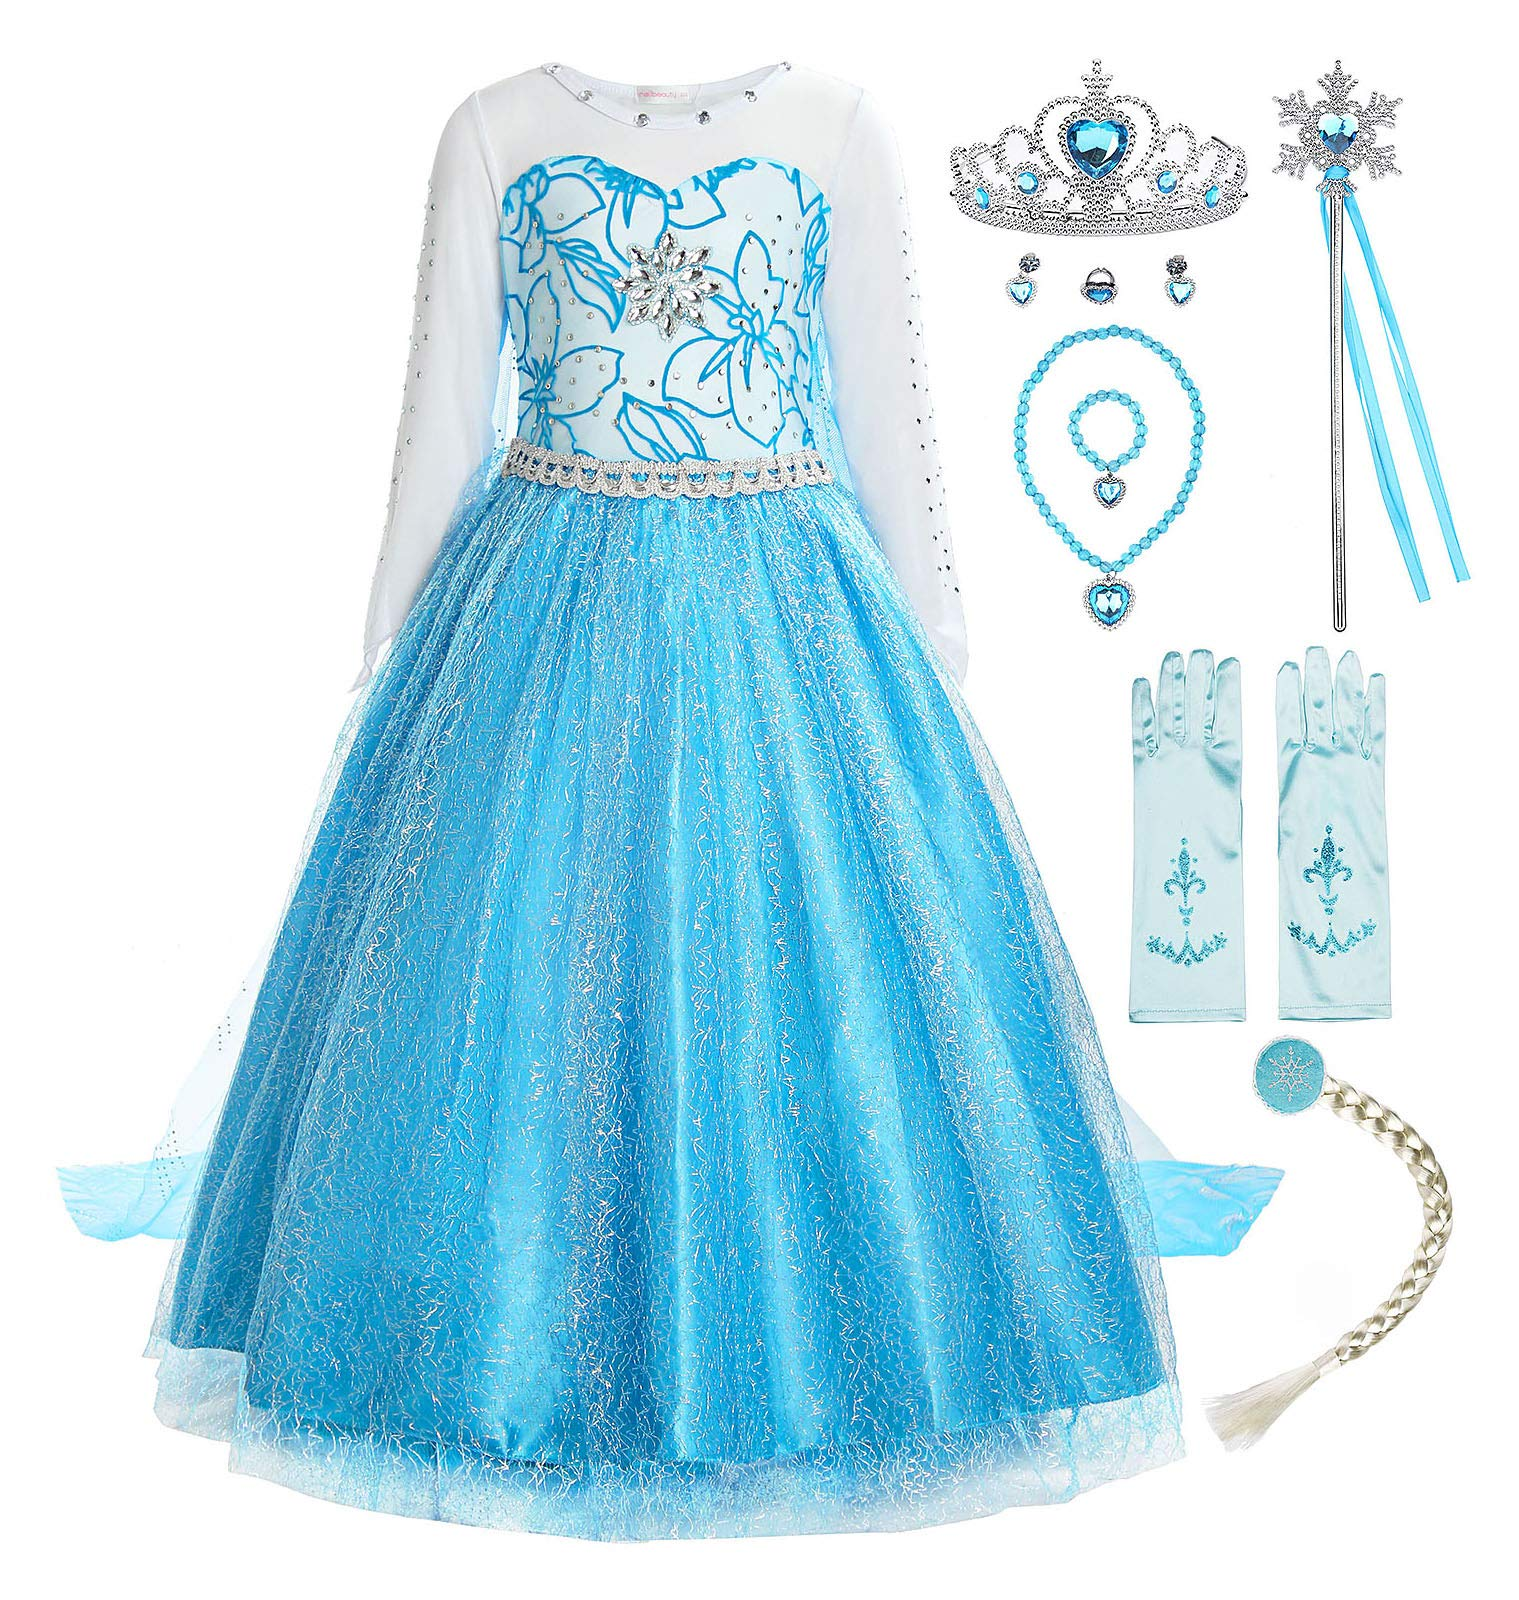 ReliBeauty Little Girls Snow Queen Princess Fancy Dress Elsa Costume with Accessories, 4, Blue